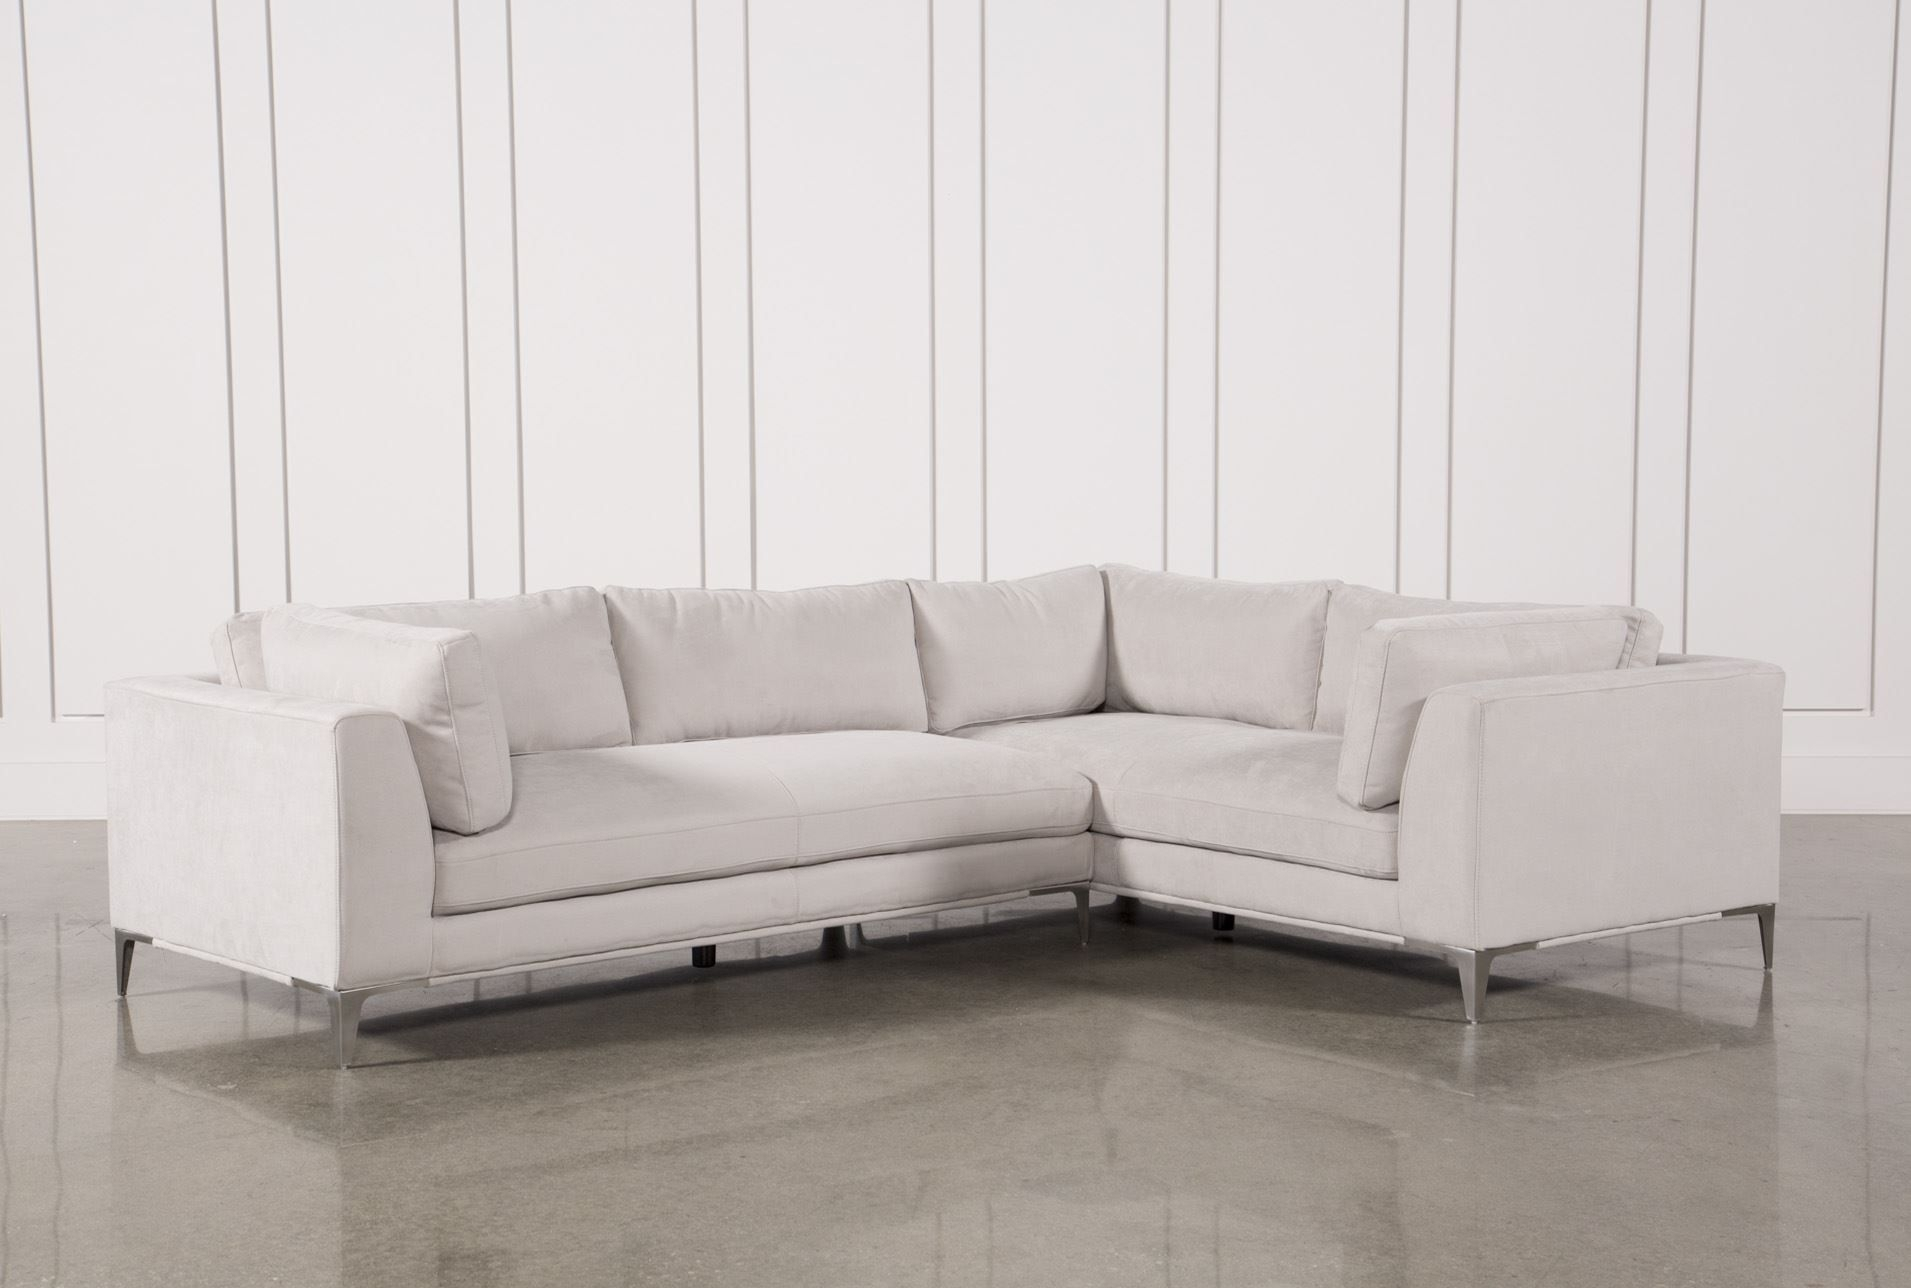 Apollo Light Grey 2 Piece Sectional | Living Space | Pinterest Pertaining To Cohen Down 2 Piece Sectionals (Image 1 of 25)